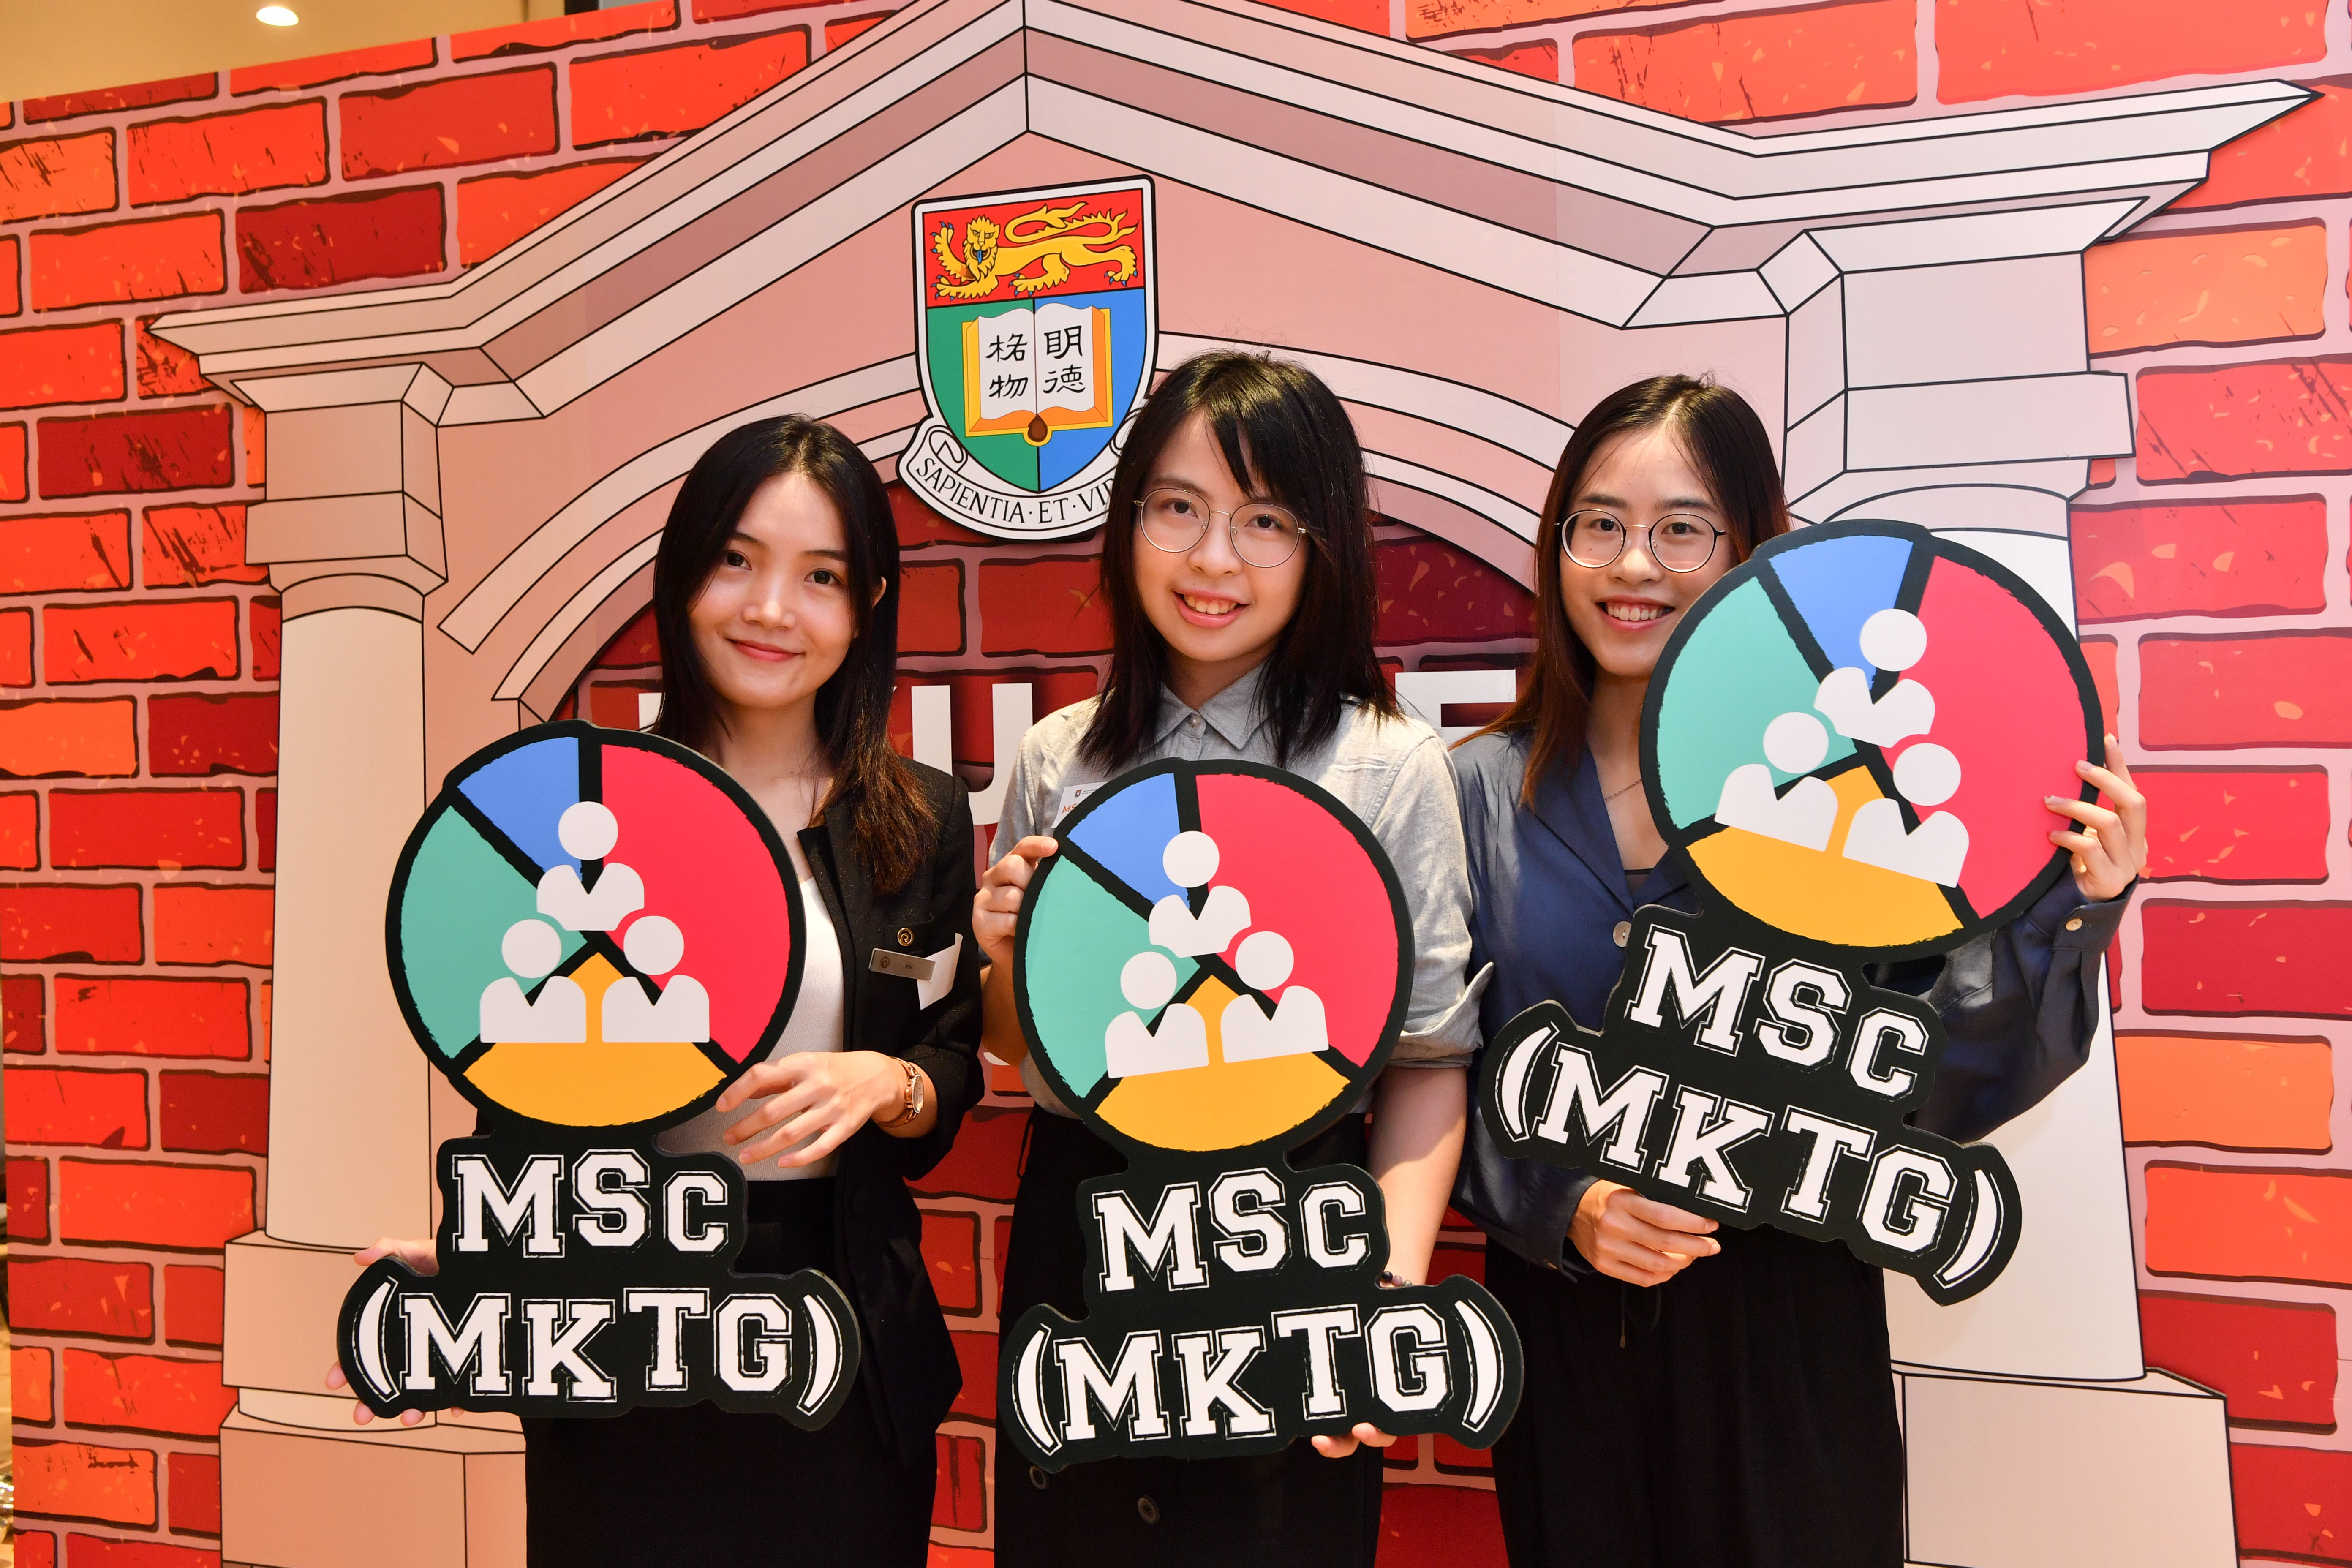 MScMktg Welcome Ceremony